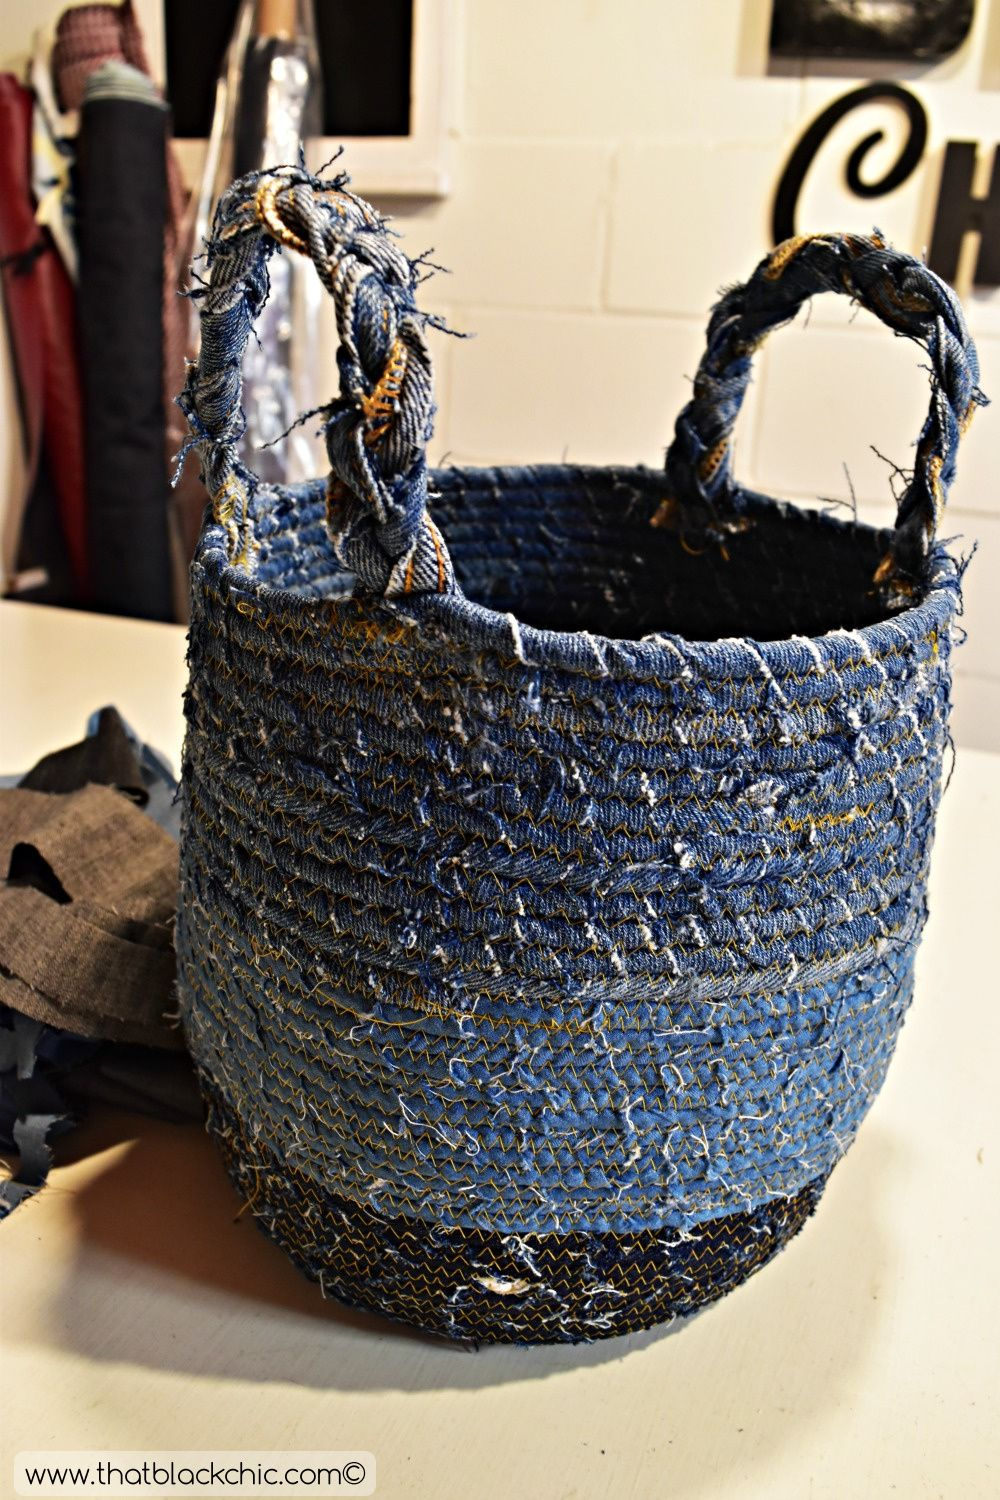 Diy Rope Basket With Recycled Denim And The Fabric